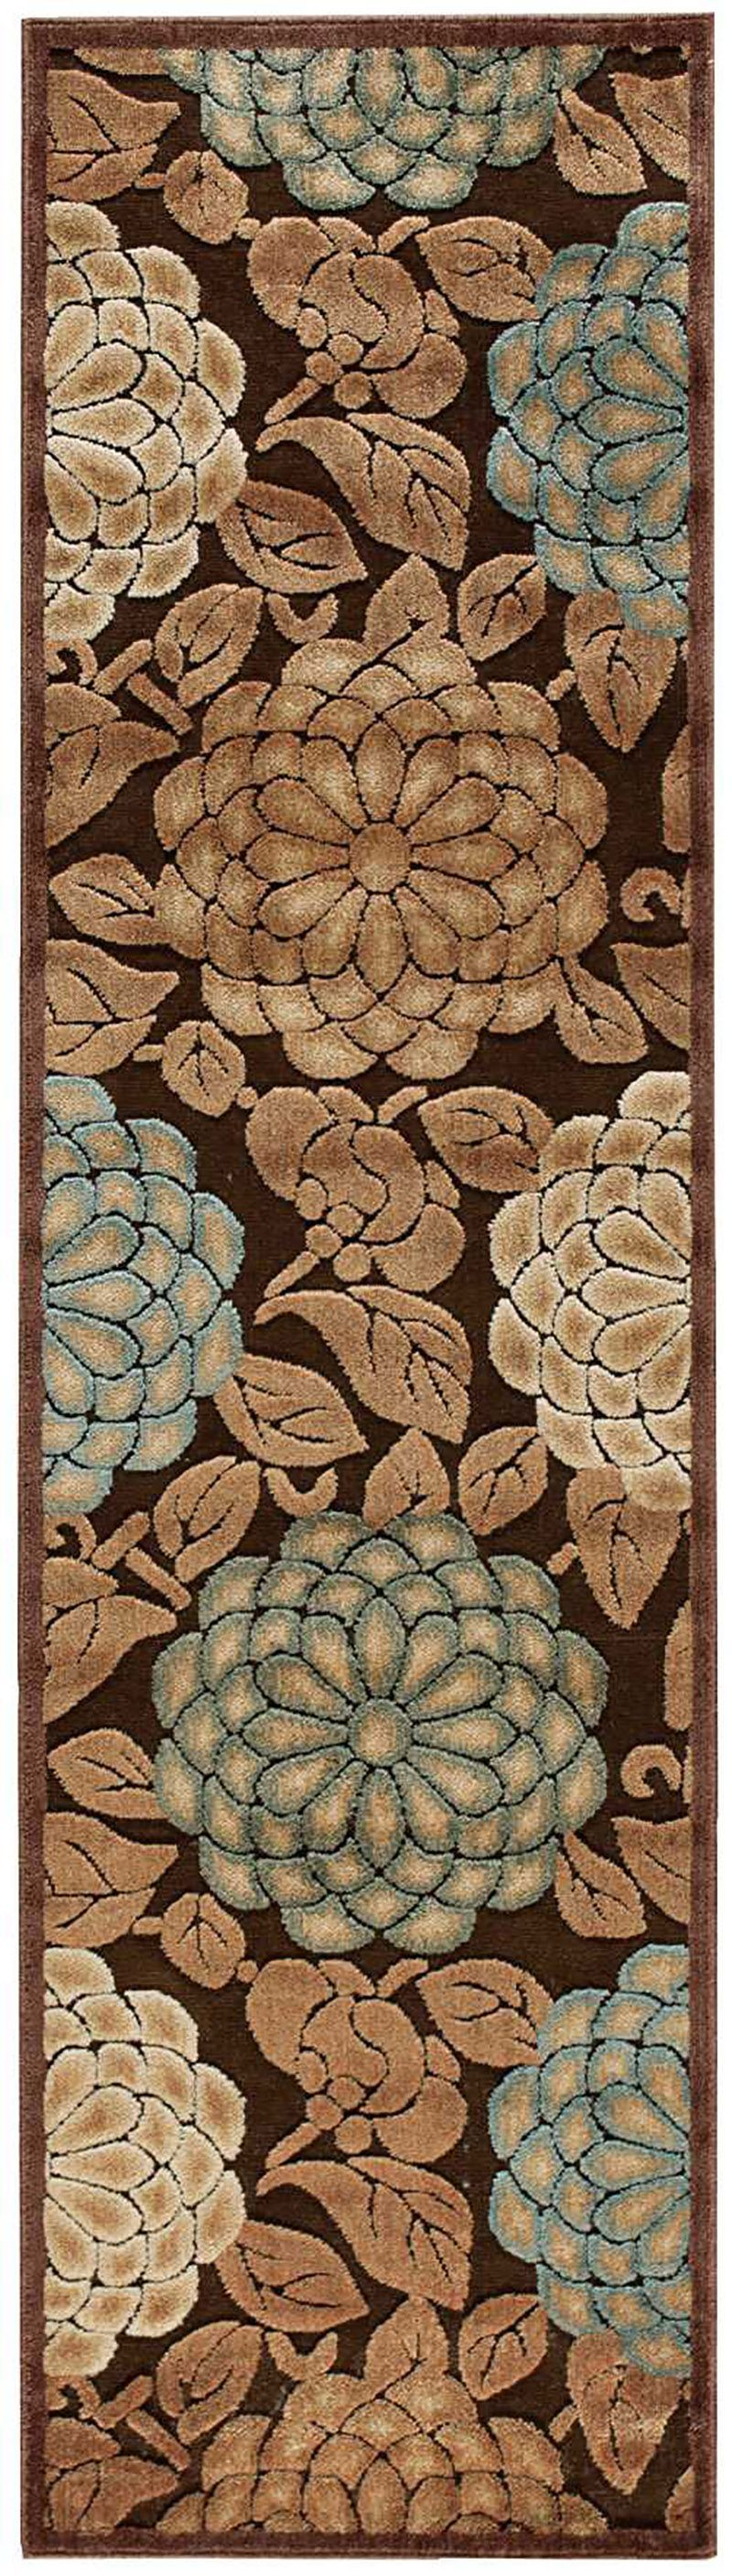 Nourison Graphic Illusions Collection Gil13 2'3 X 8' Runner, Brown